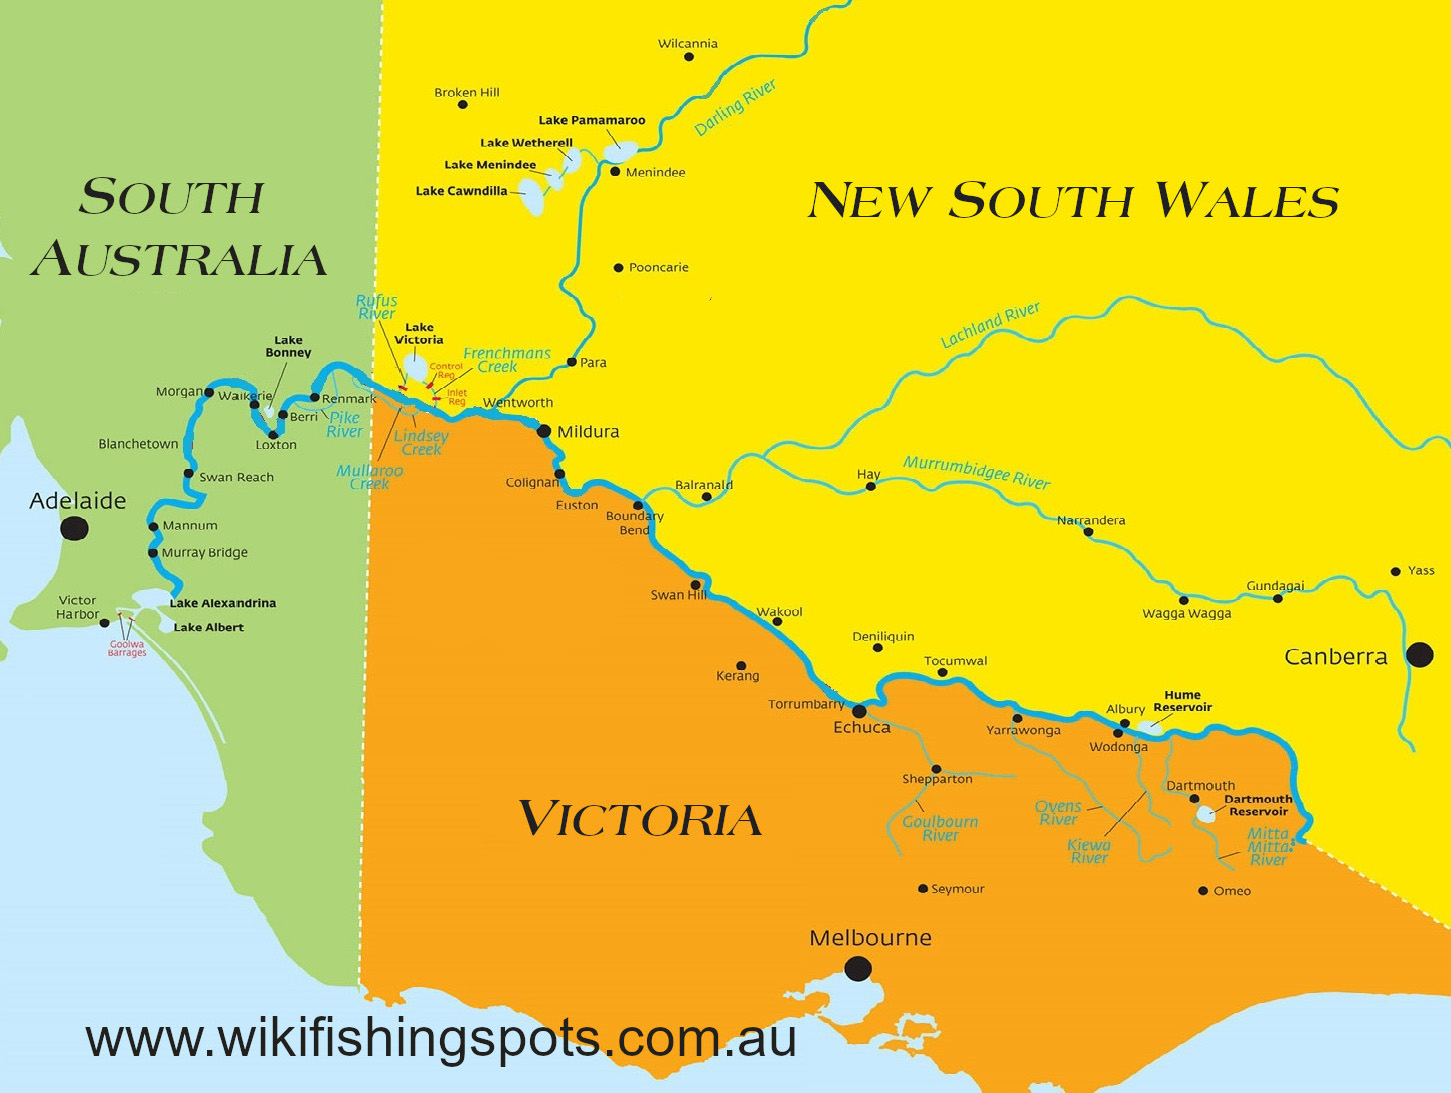 The mighty Murray River spans three states. Image adapted from SA WATER online map